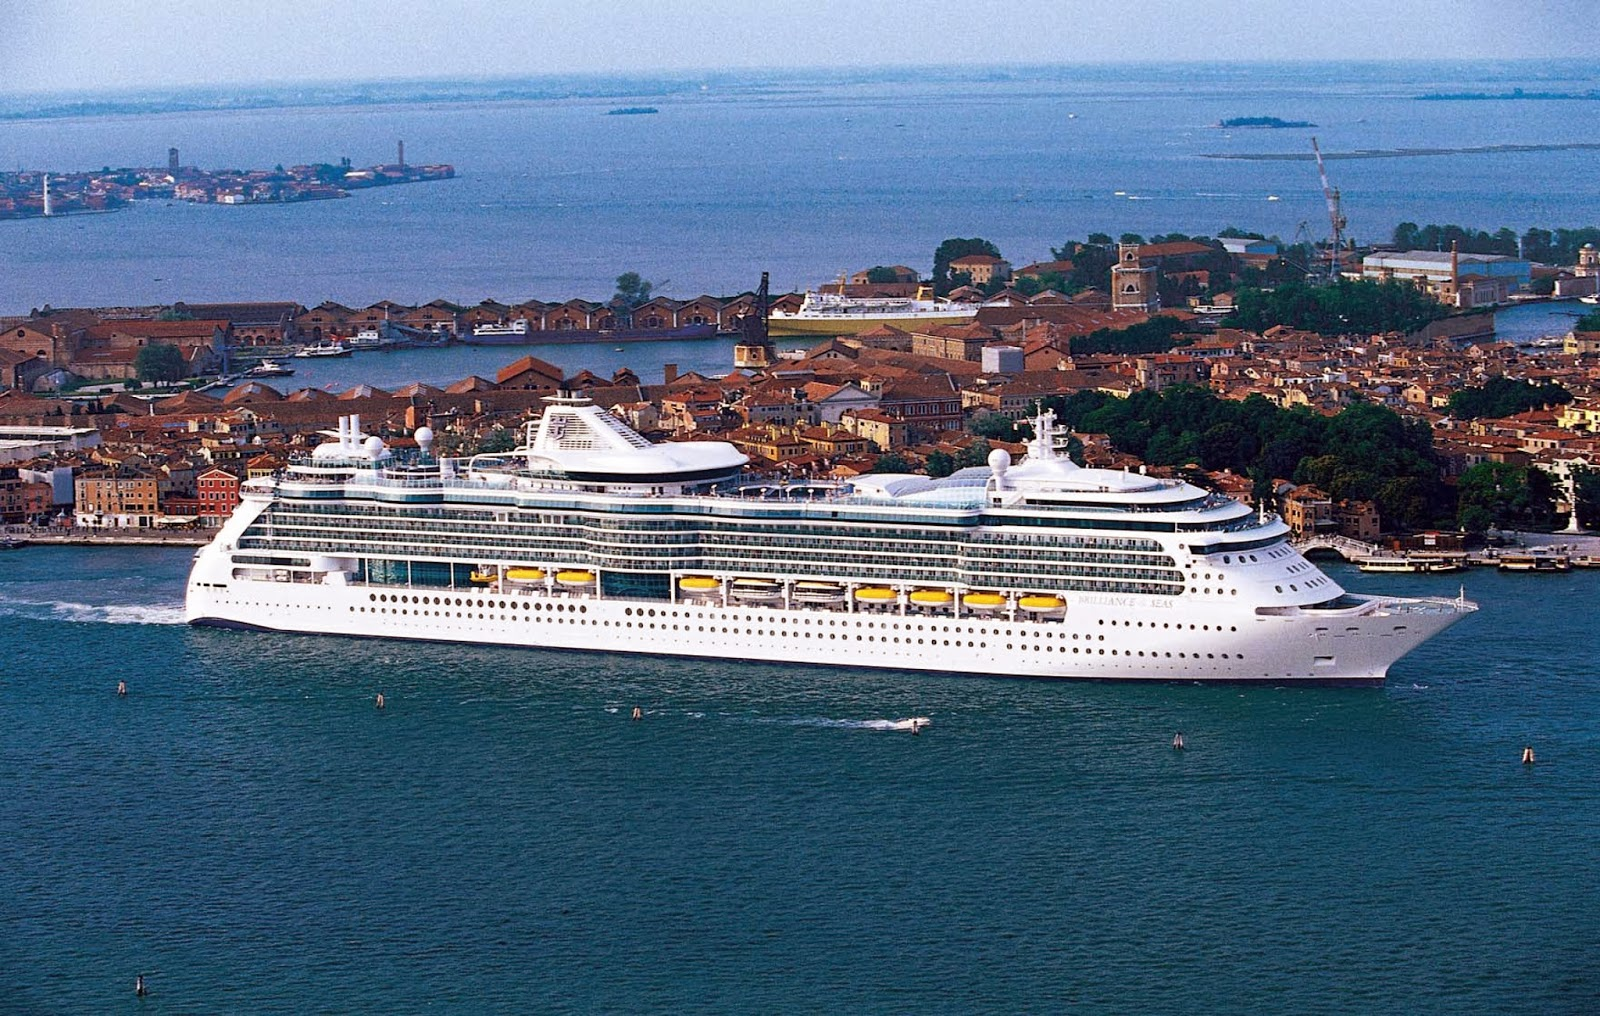 Last Minute Cruise Deals 179 For 5 Night Western Caribbean Cruise On Brilli